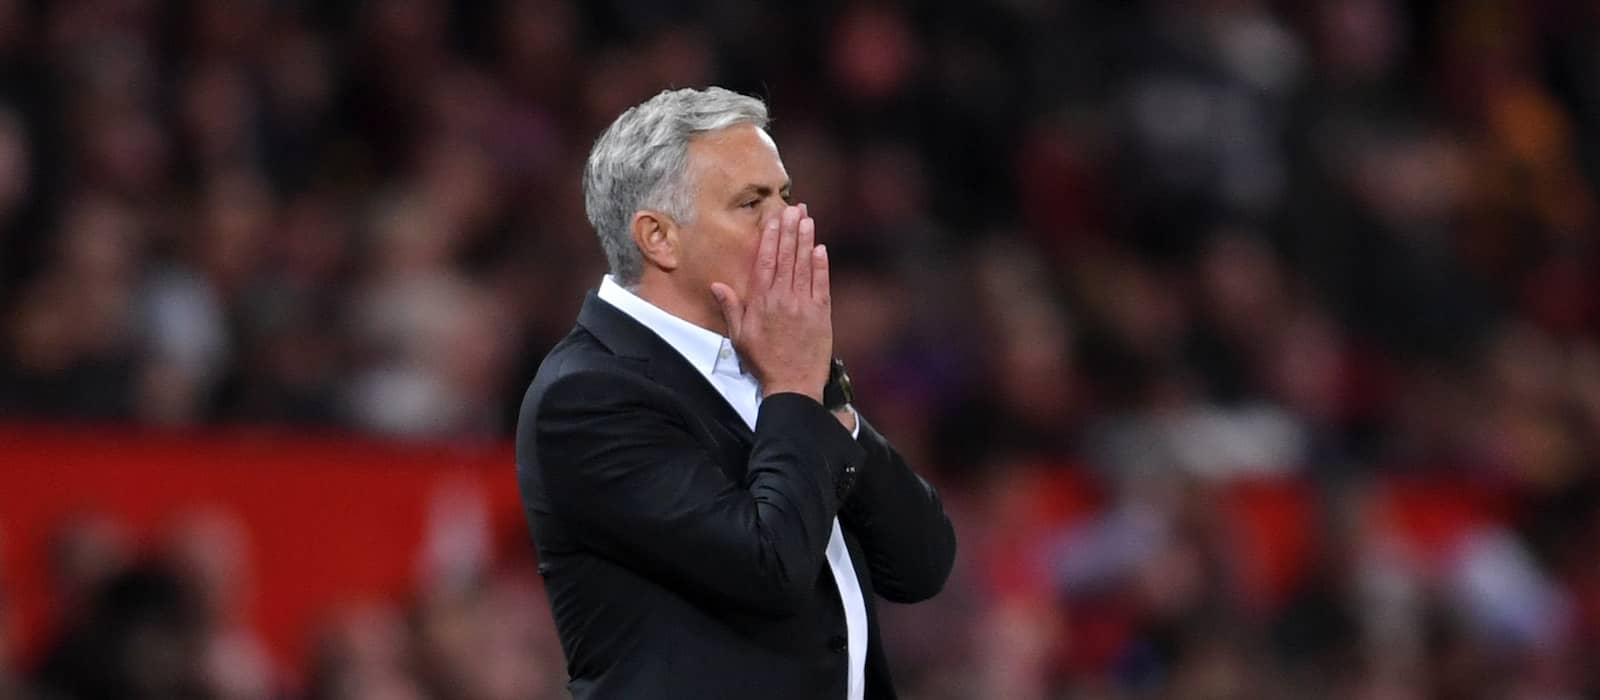 Jose Mourinho disappointed with Manchester United's scouting – report